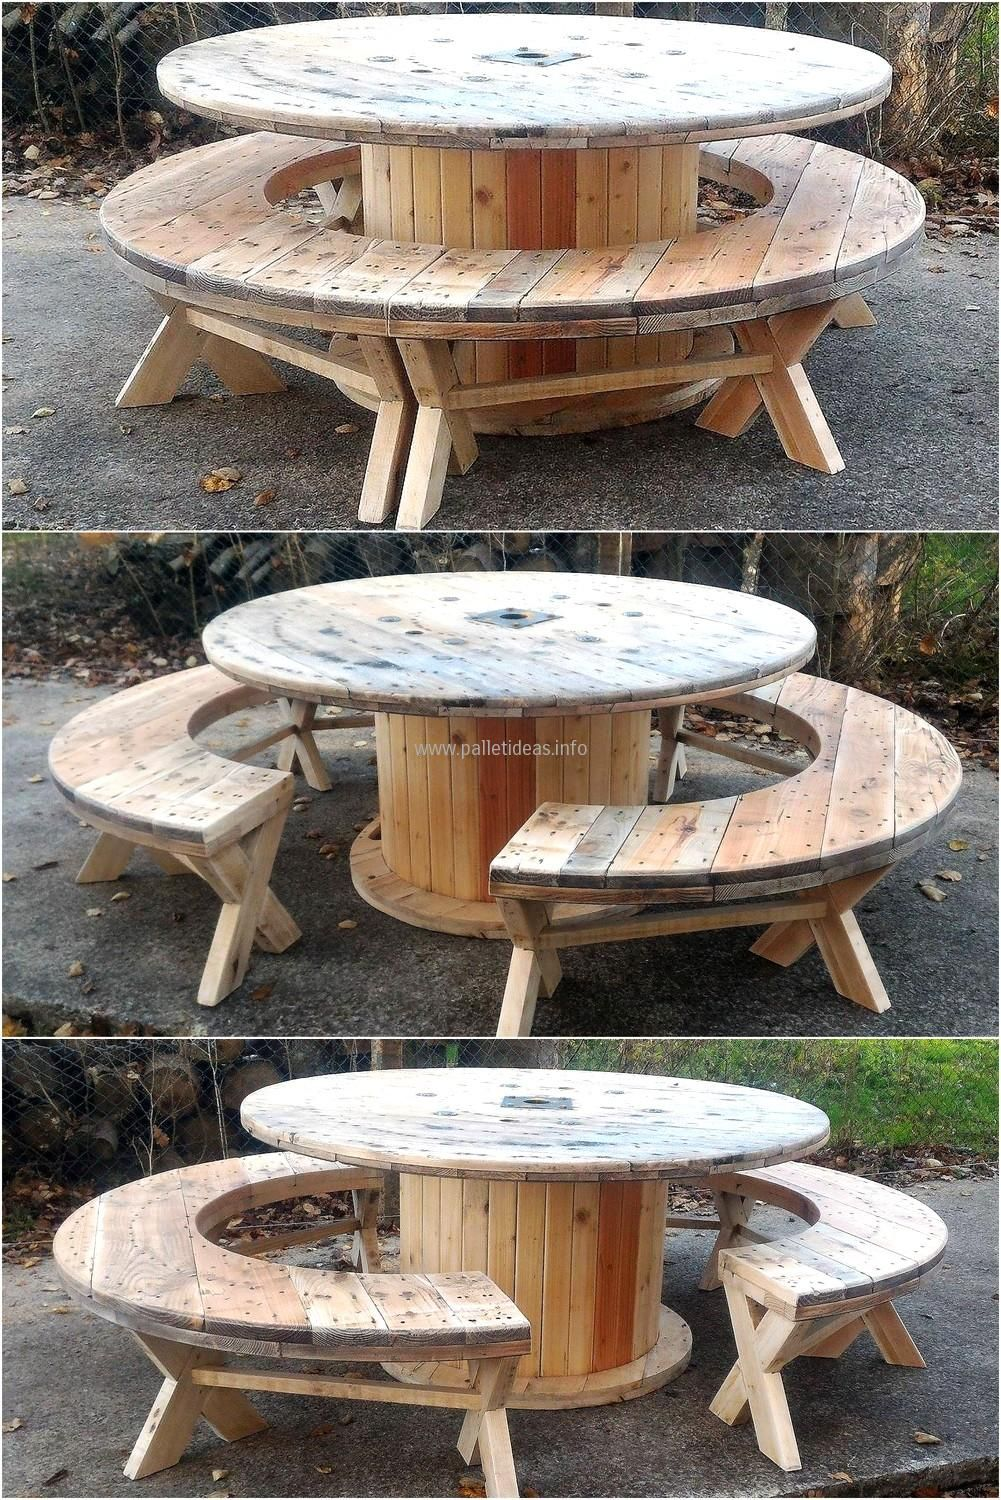 recycled pallet cable reel patio furniture recycled pallet cable reel patio furniture Pallet project